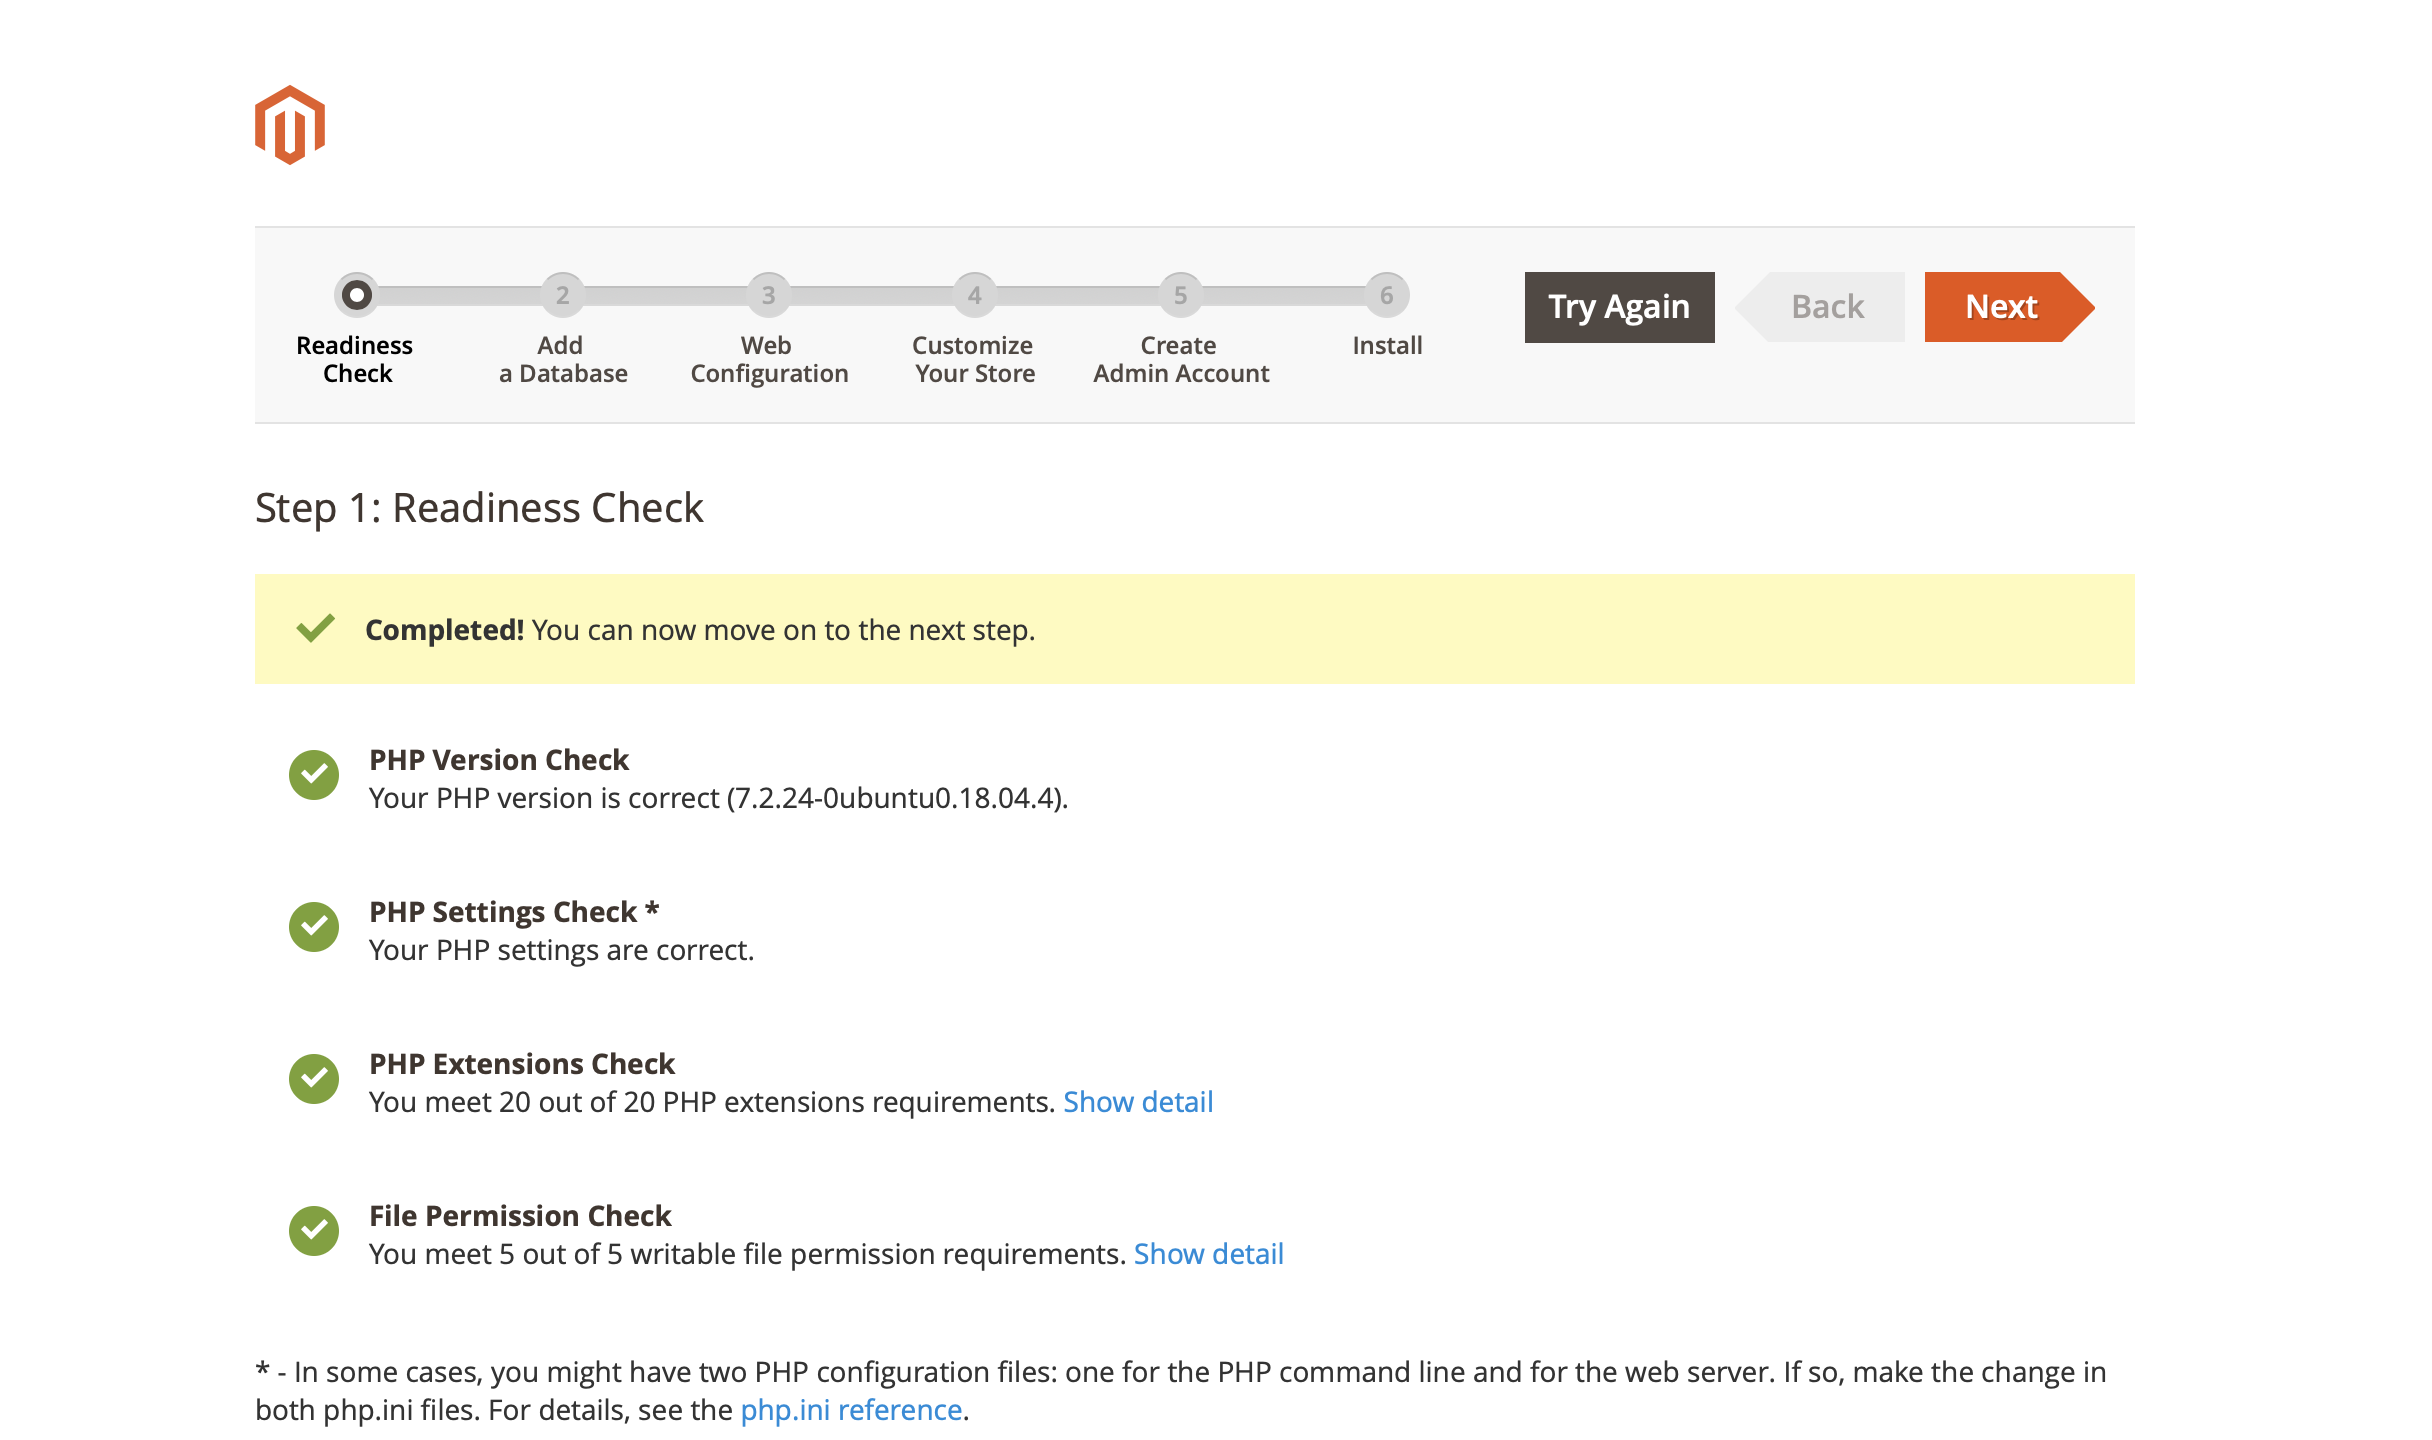 Magento Installation Wizard - Readiness Check Complete